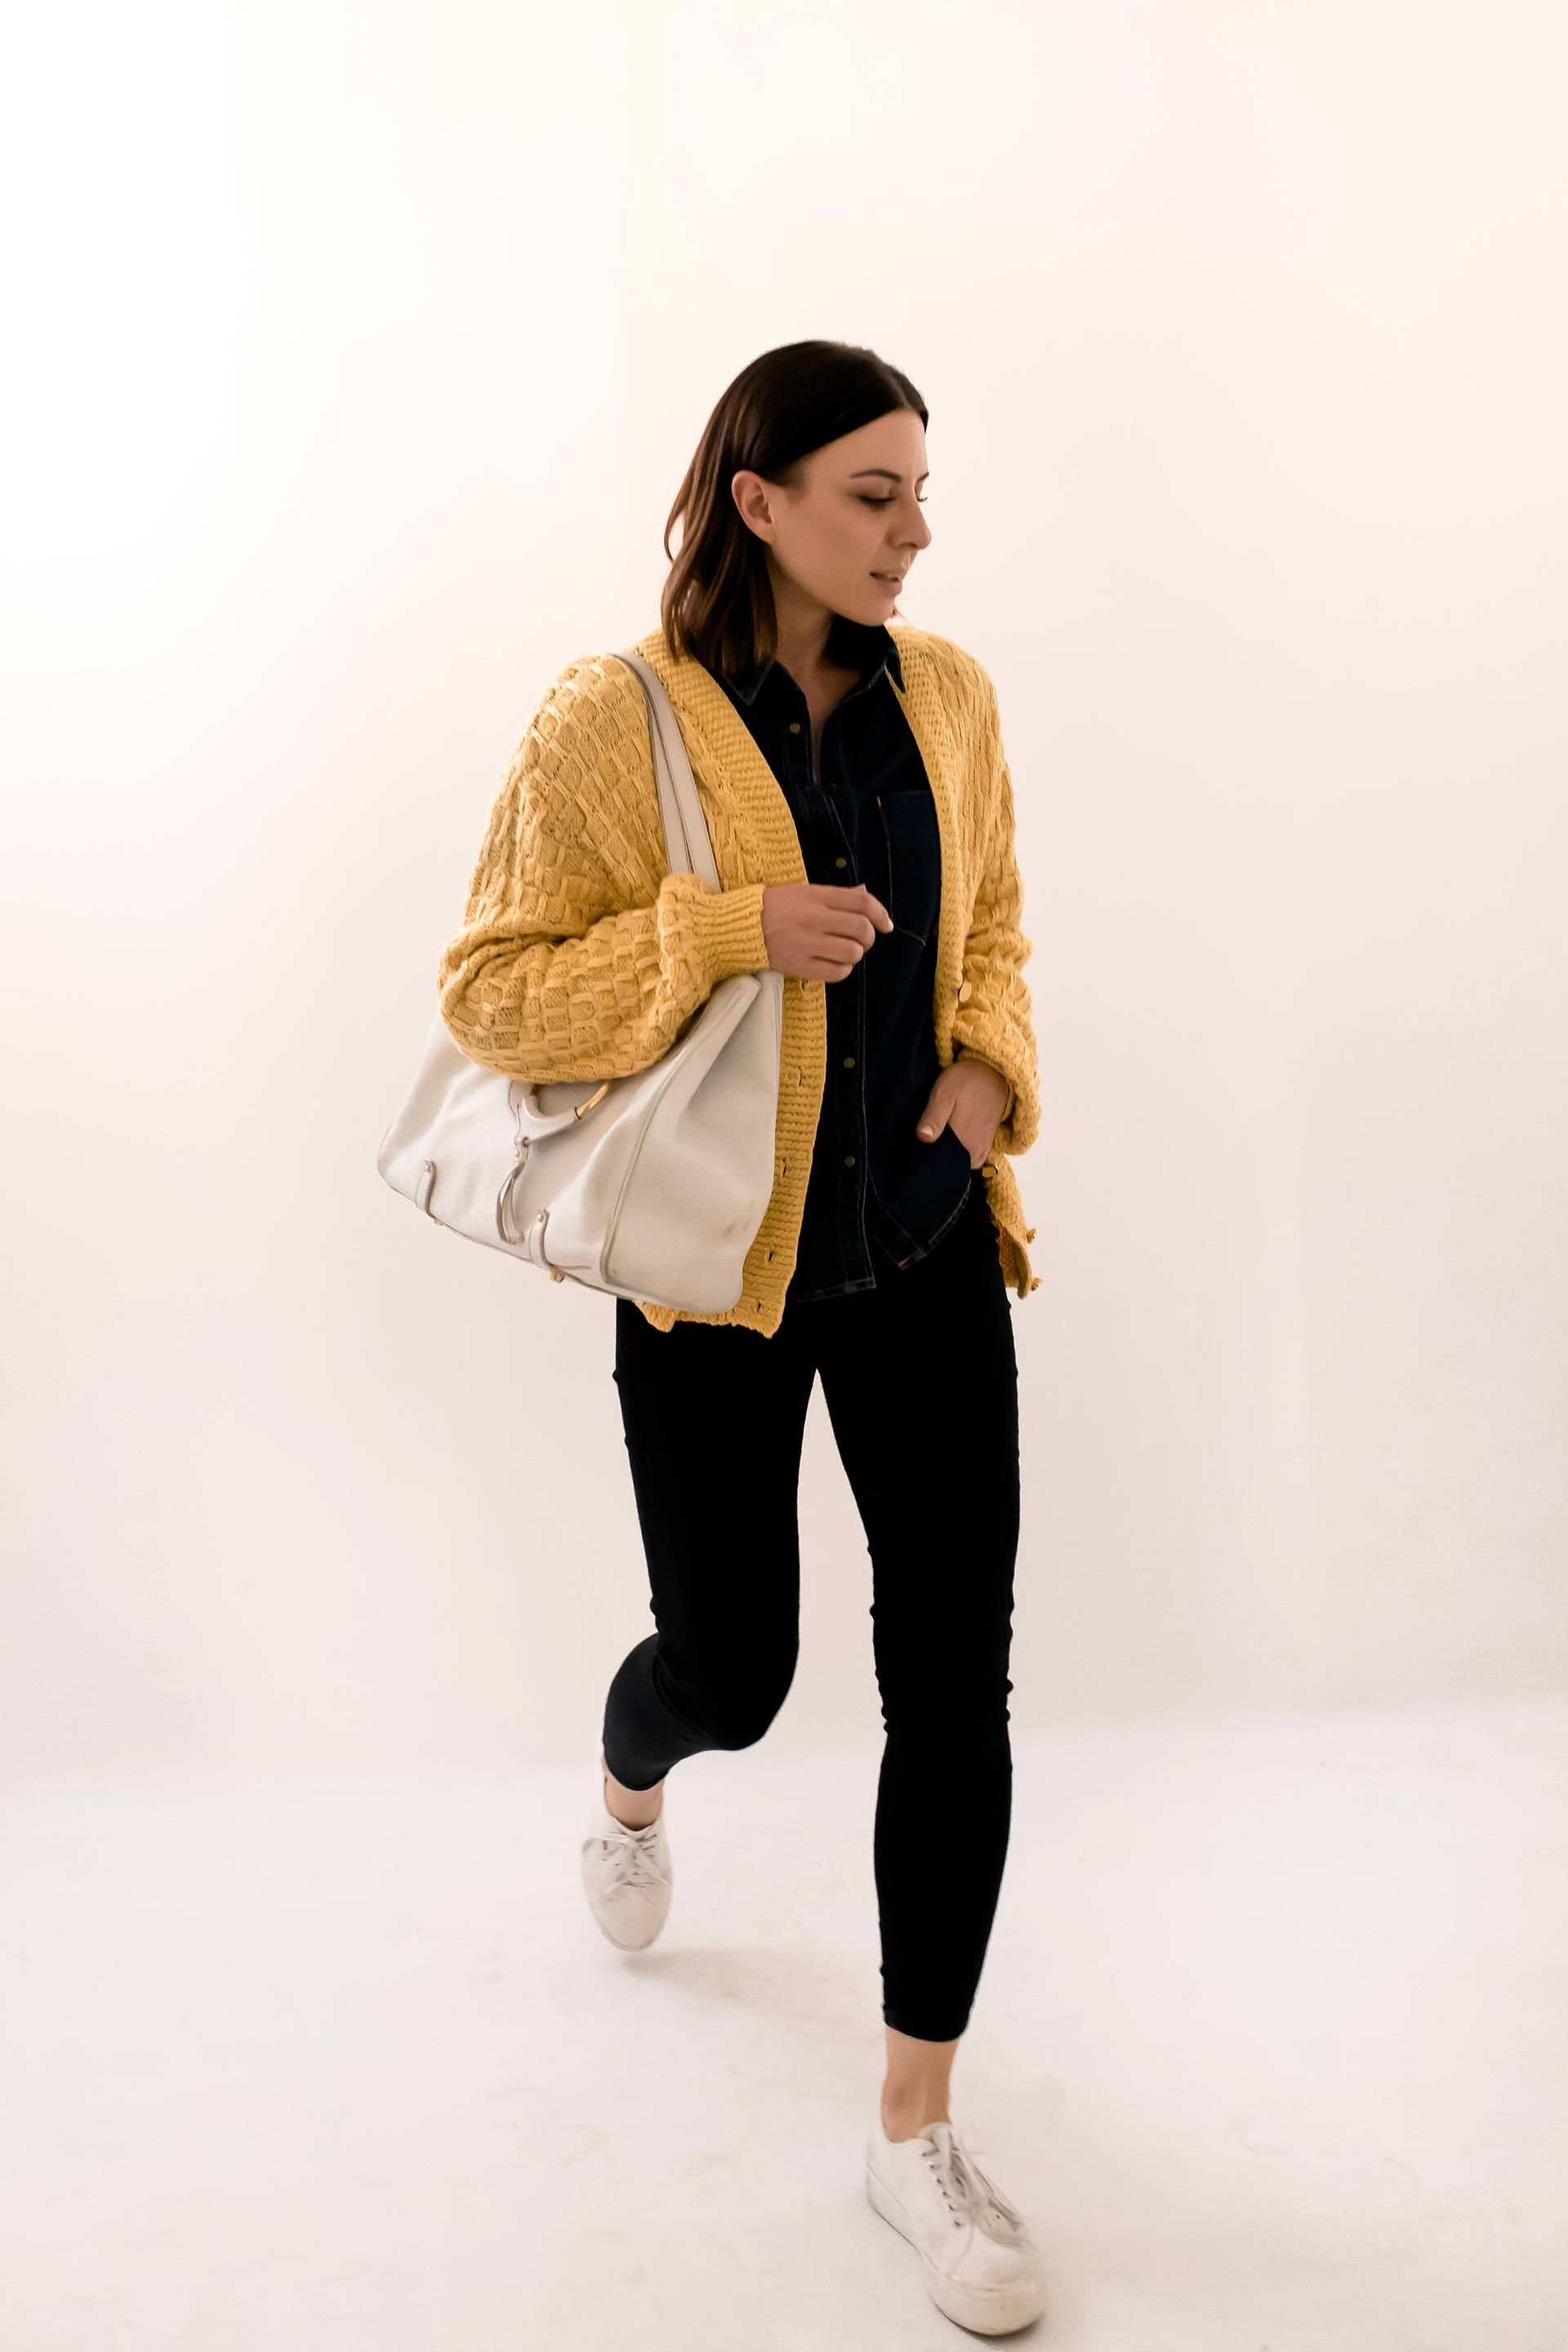 Enthalt Werbung Fashion Diary Outfit Tagebuch Herbst Outfits Fur Frauen Herbst Outfits Modetrends 2018 Casual Chic Outfit Fashion Fashion Blogger Outfit